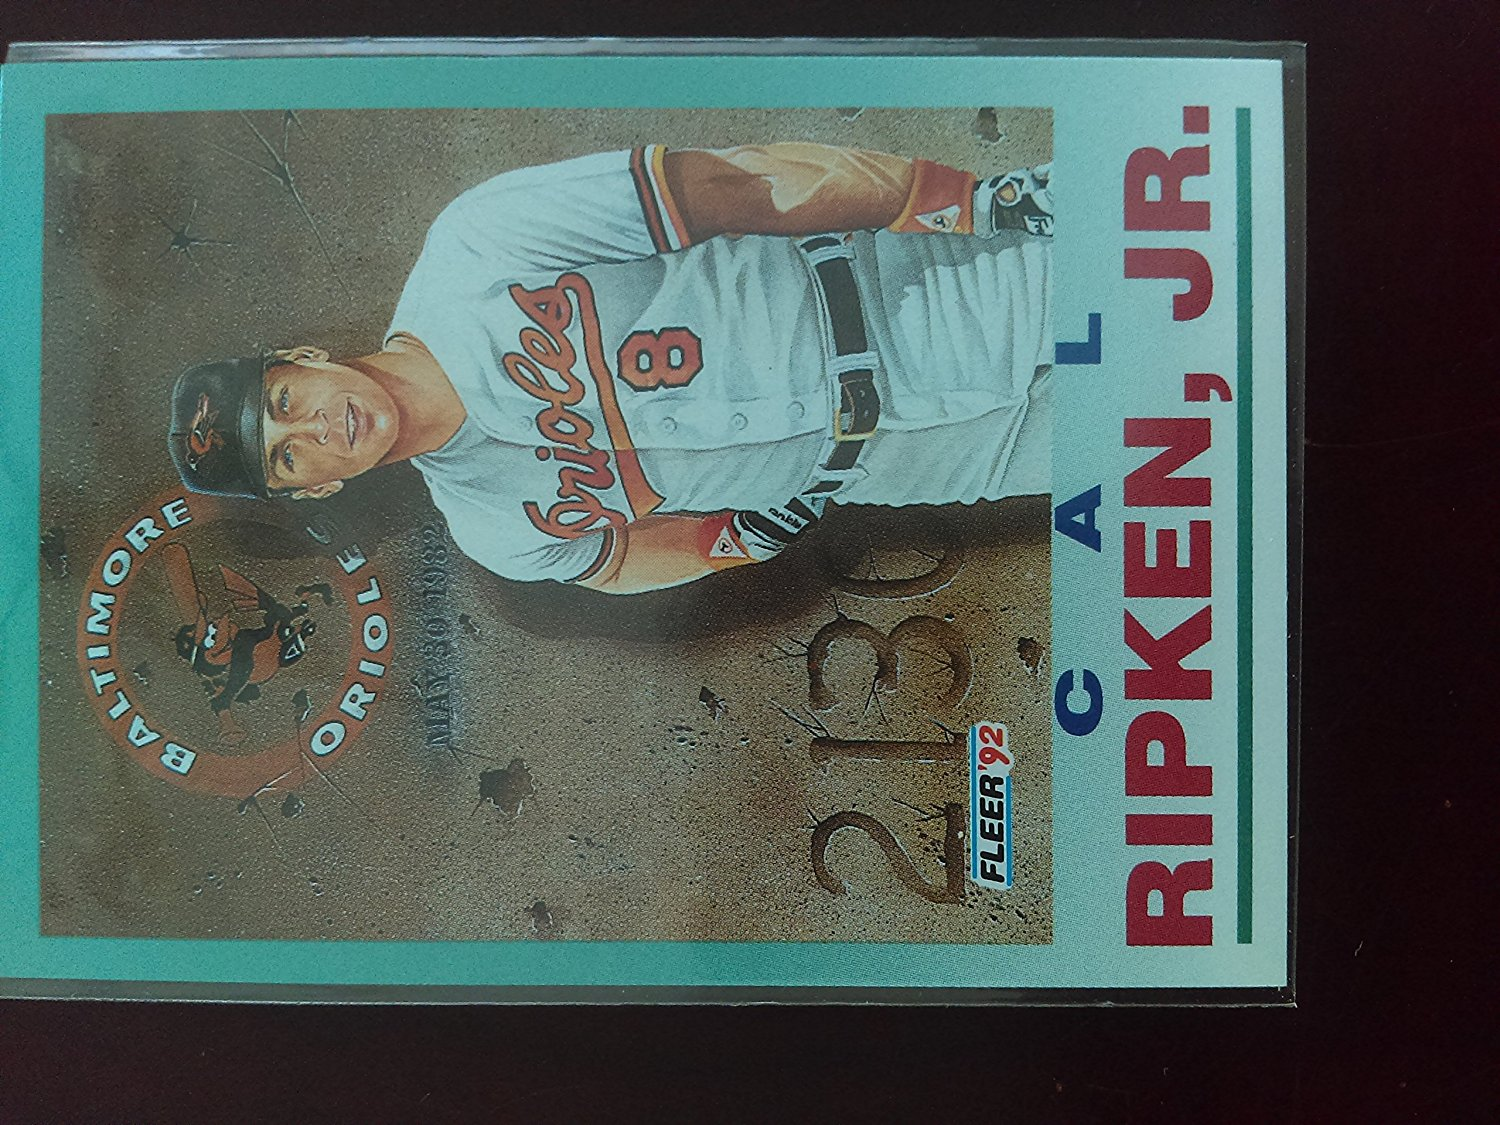 Buy 1992 Fleer 711 Cal Ripken Jr Pv Baltimore Orioles